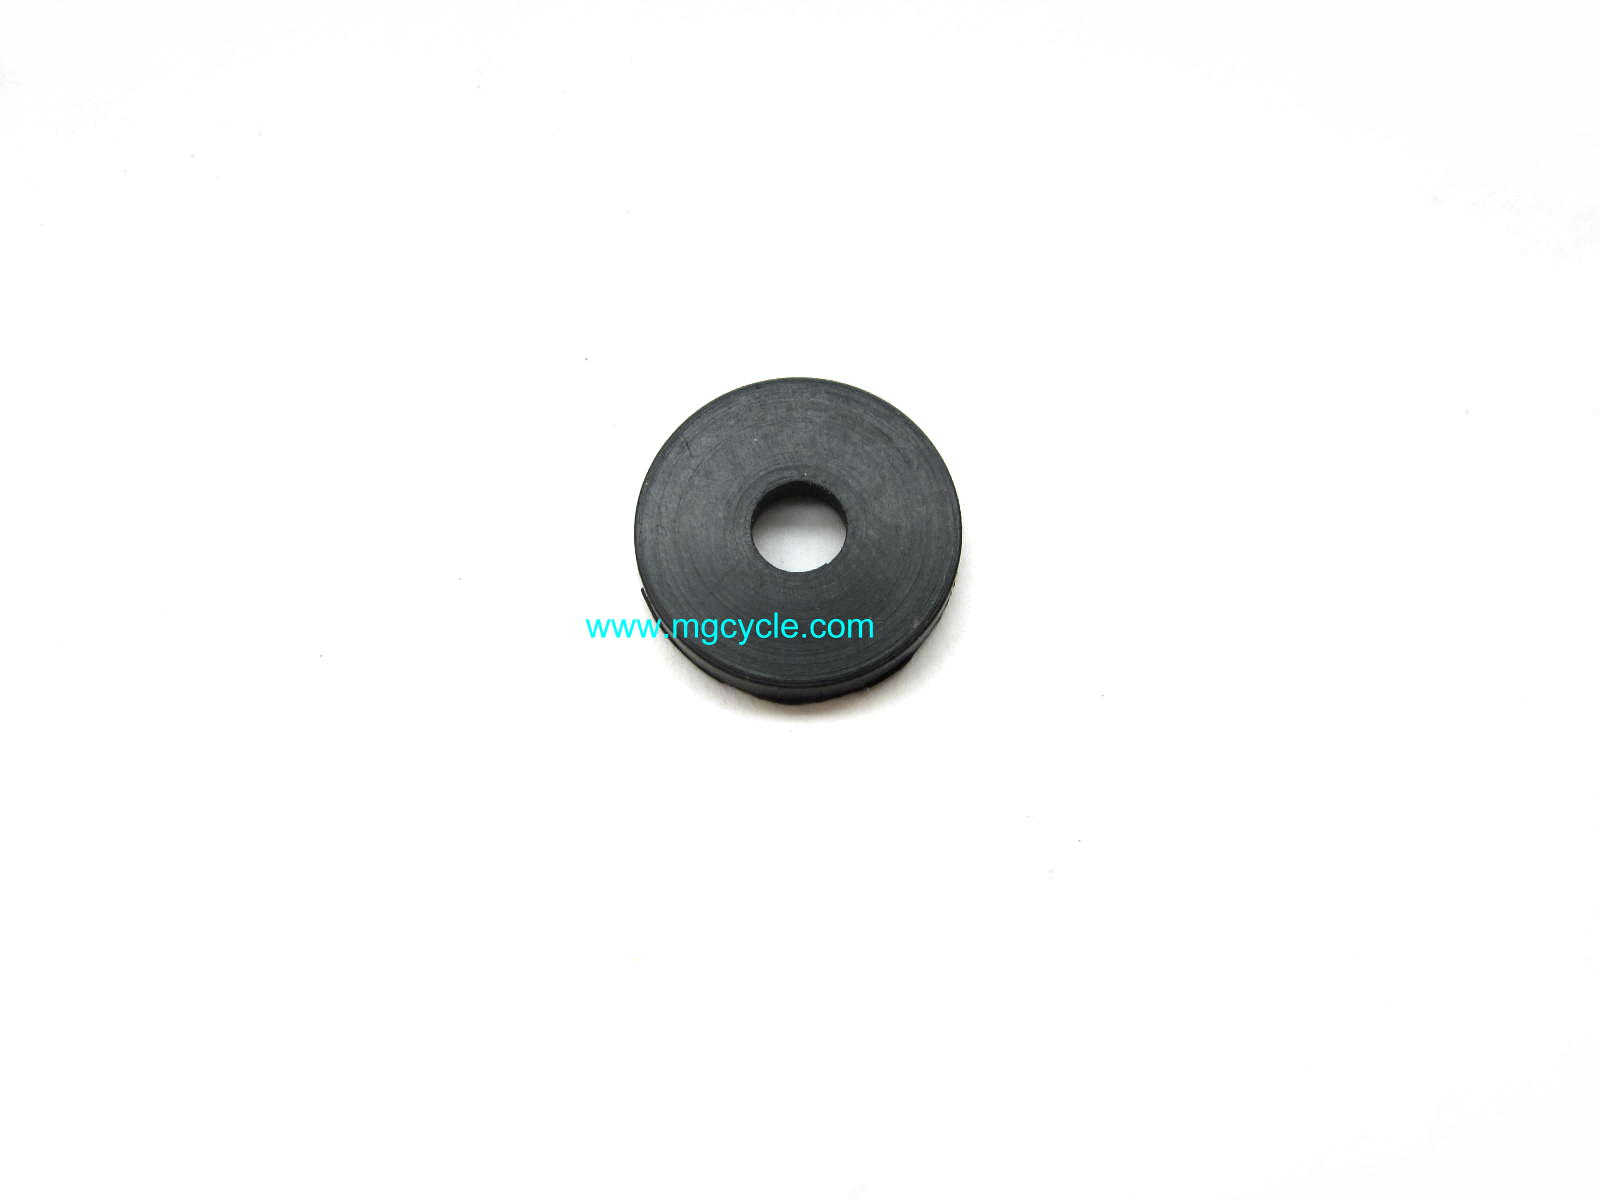 Rubber washer, for 6mm bolt